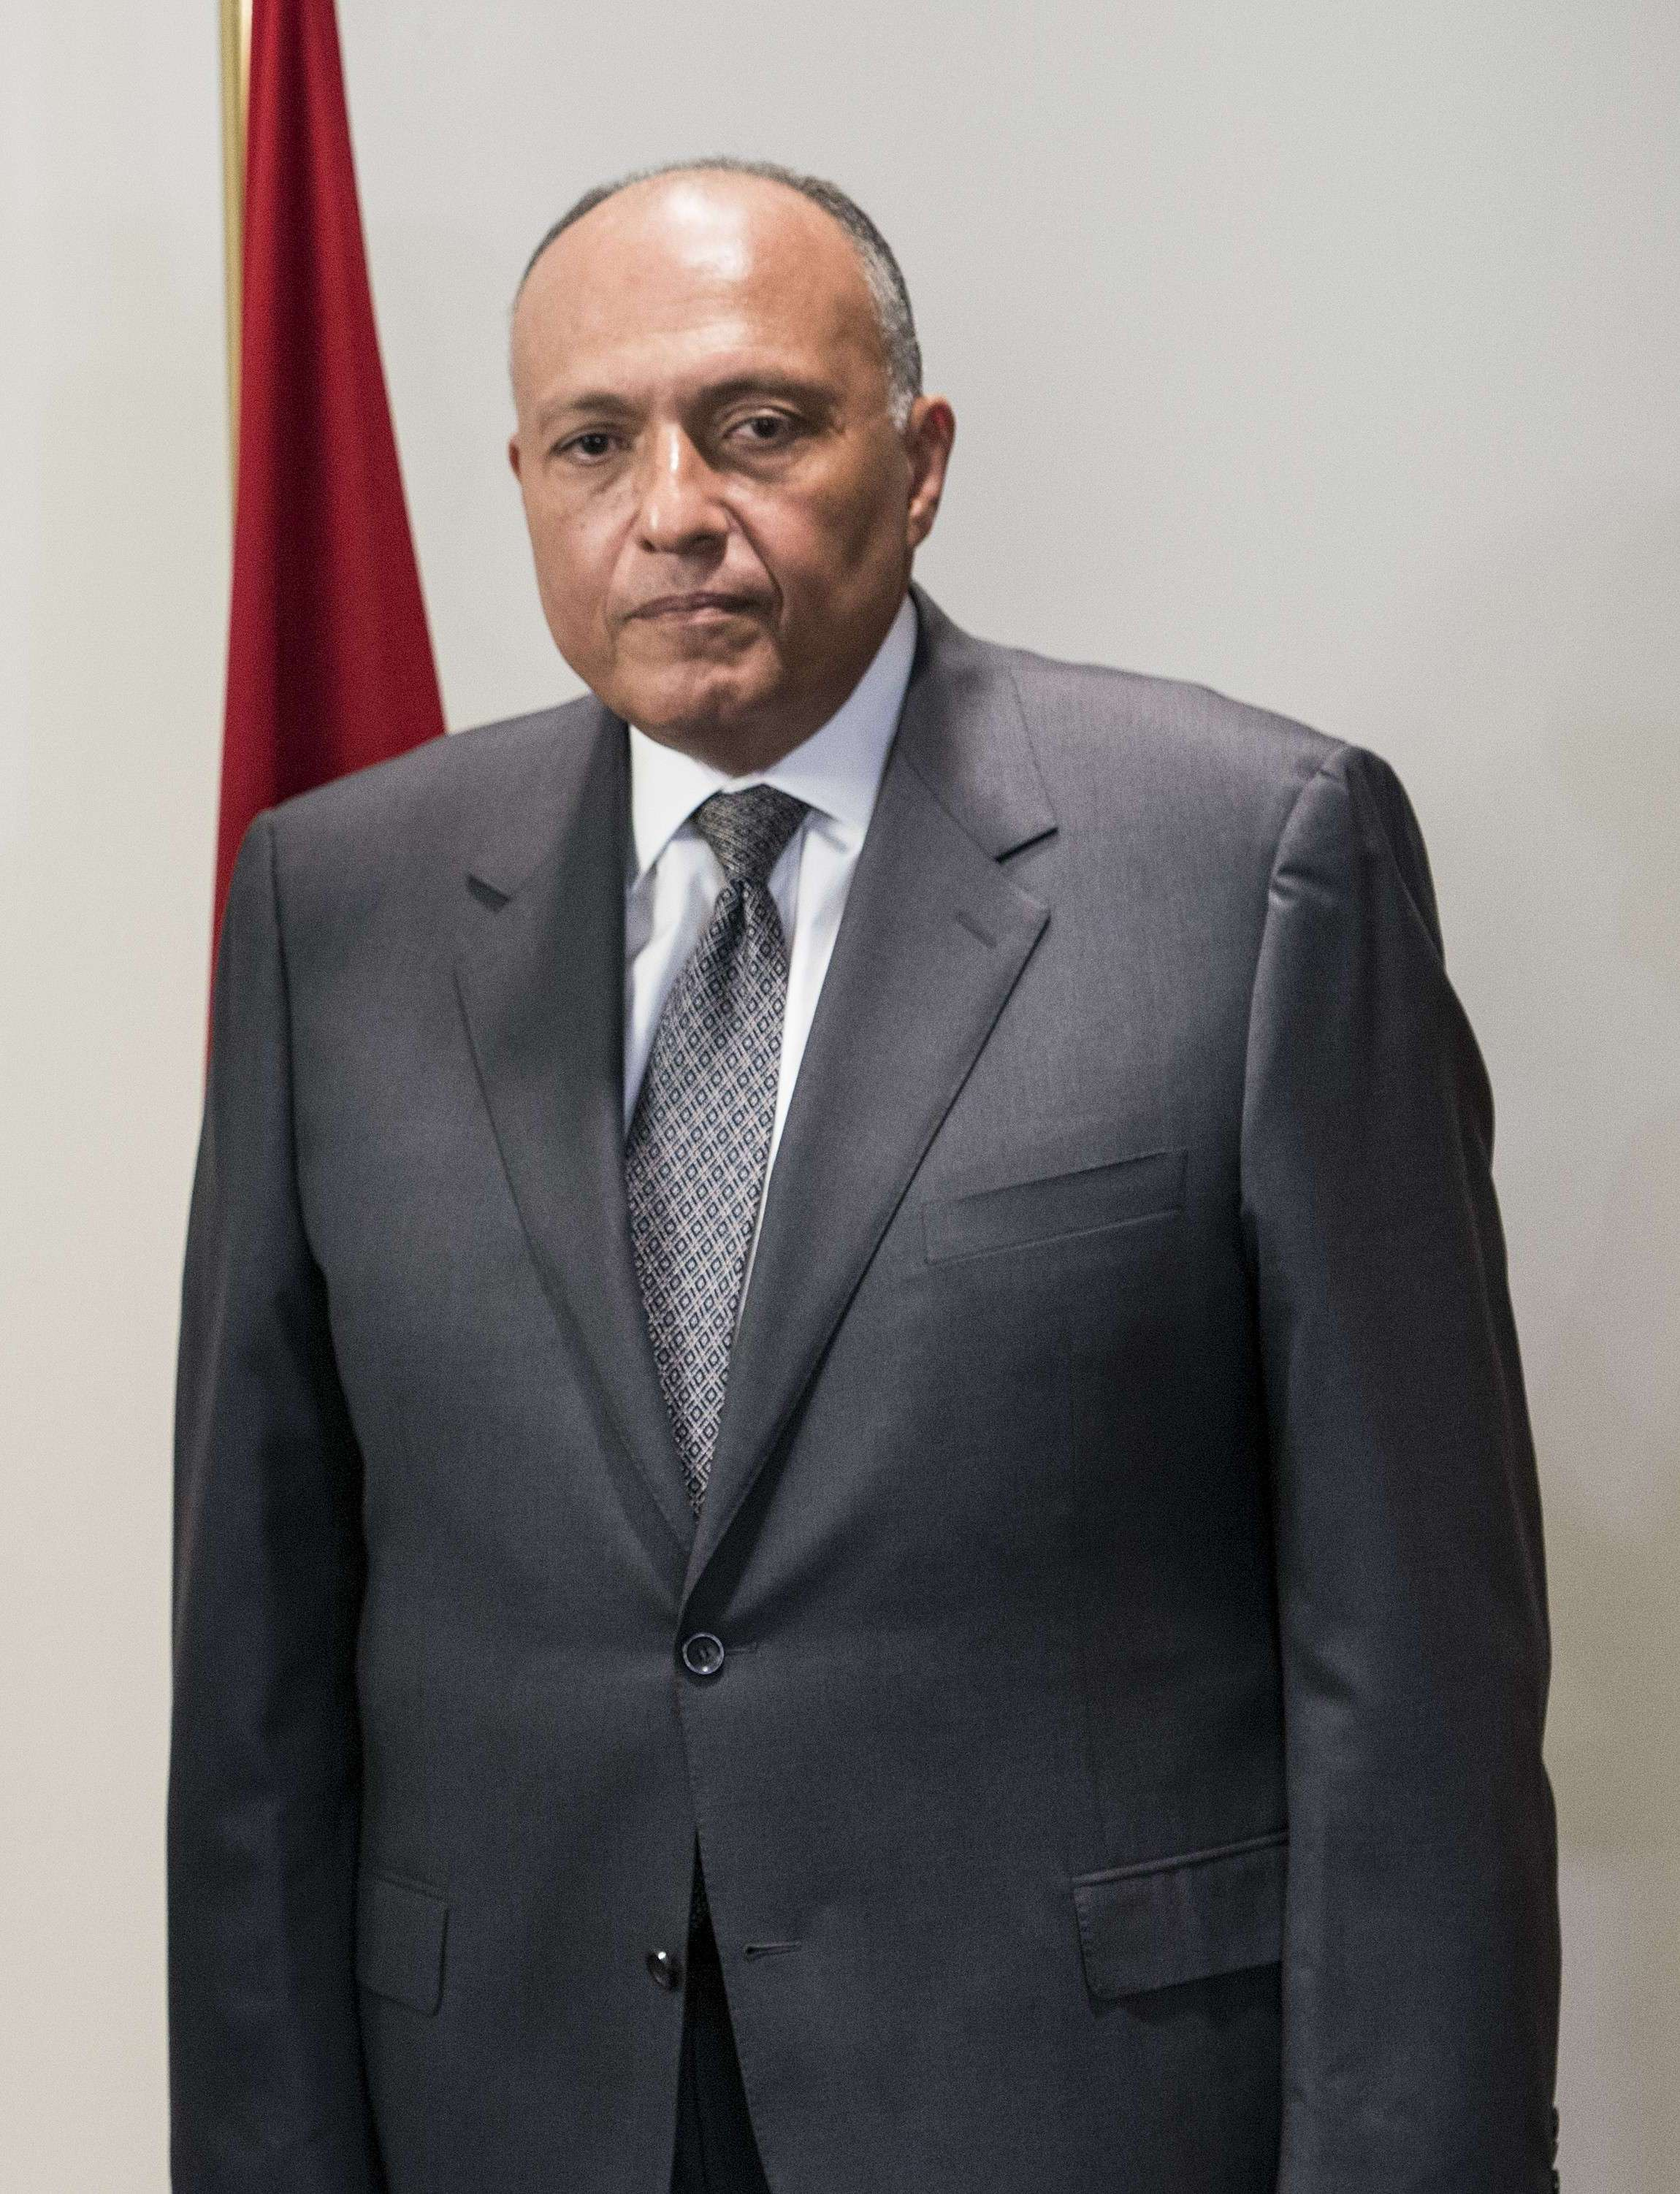 Egyptian Foreign Minister Sameh Shoukry. (AFP File Photo)